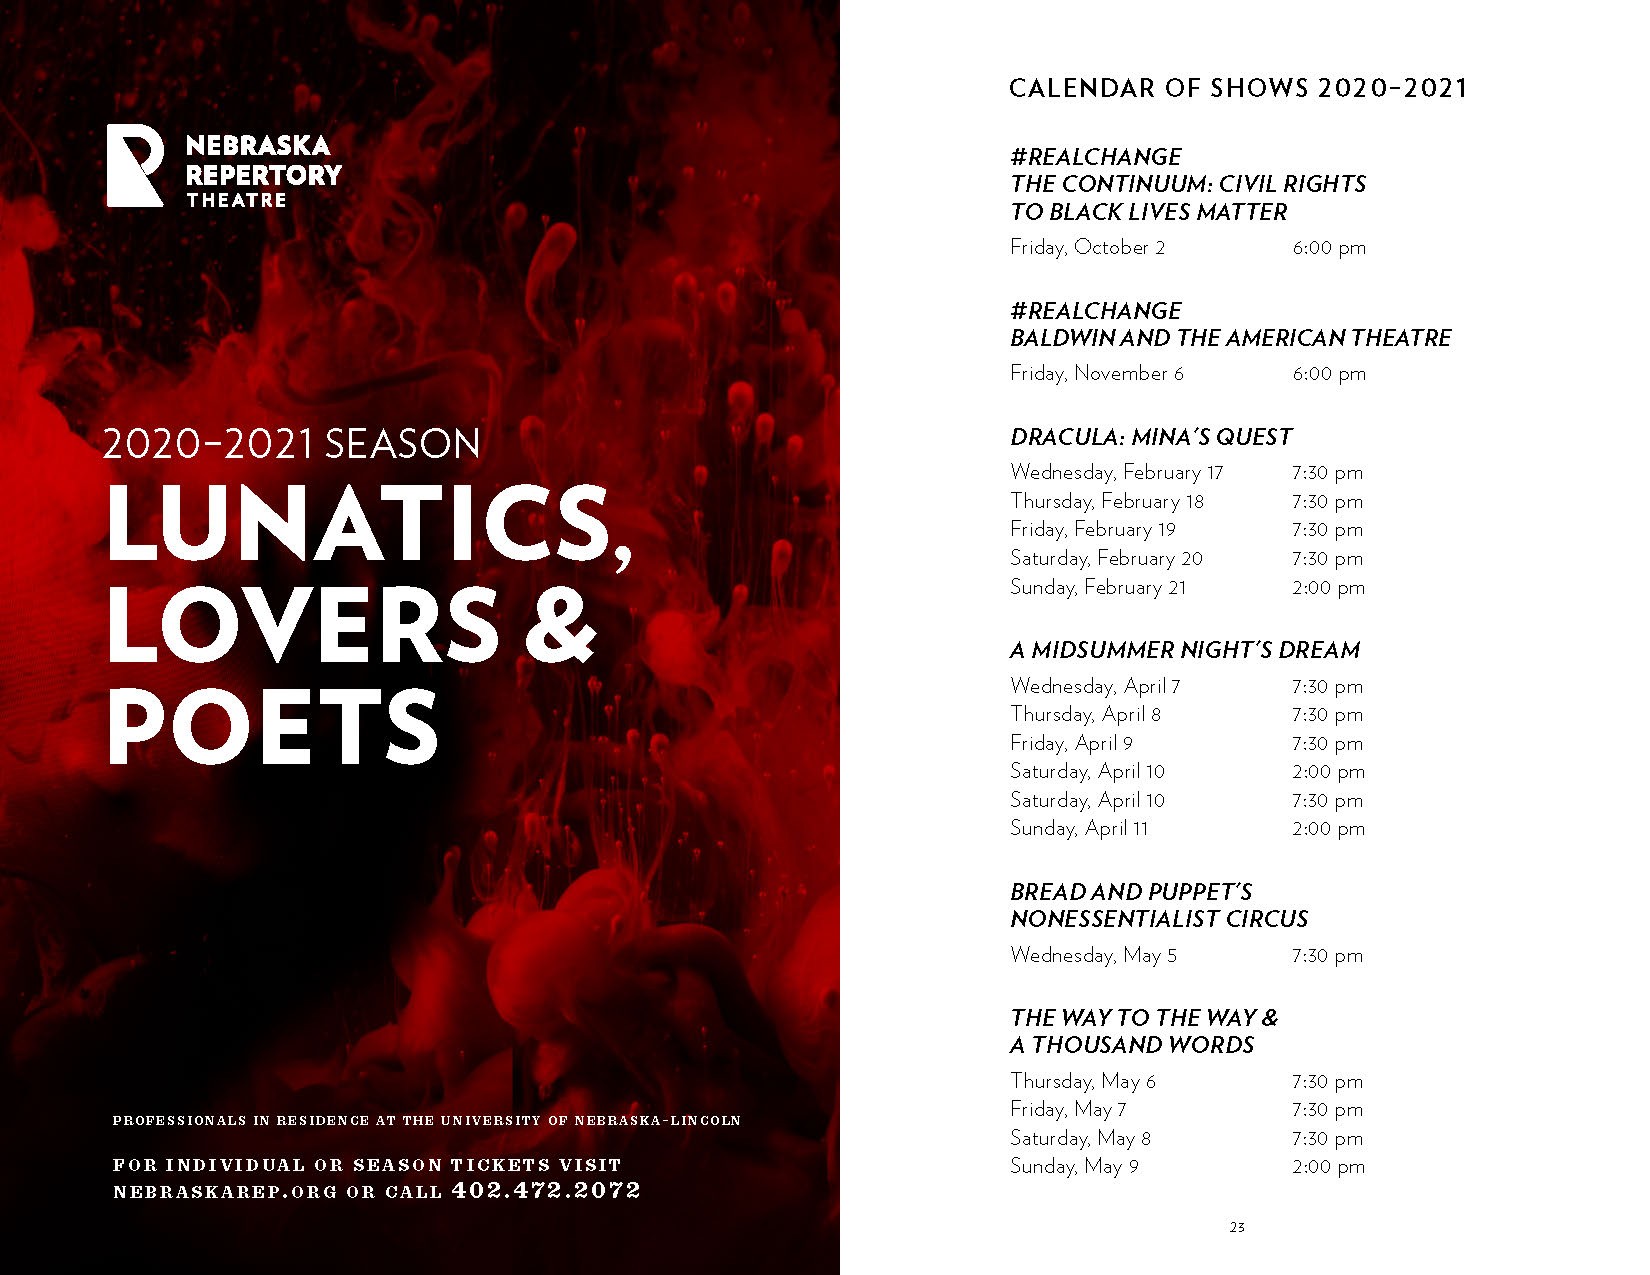 A spread from a brochure. On the left is the title '2020–2021 Season: Lunatics, Lovers and Poets'. On the right is a list of shows and show times.